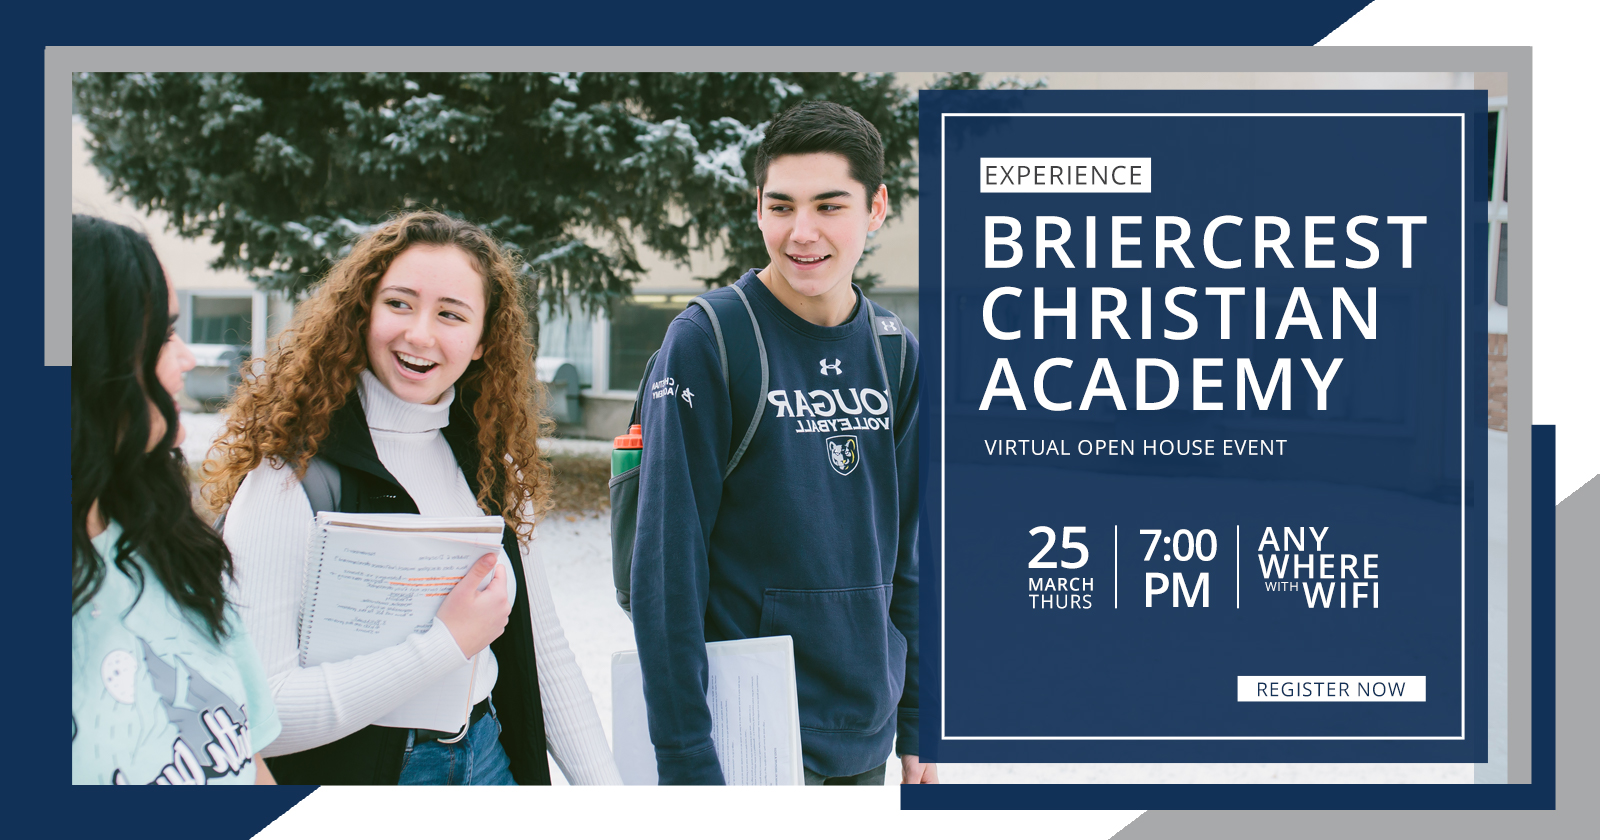 VIRTUAL OPEN HOUSE: Register for the event to learn more about life at BCA!